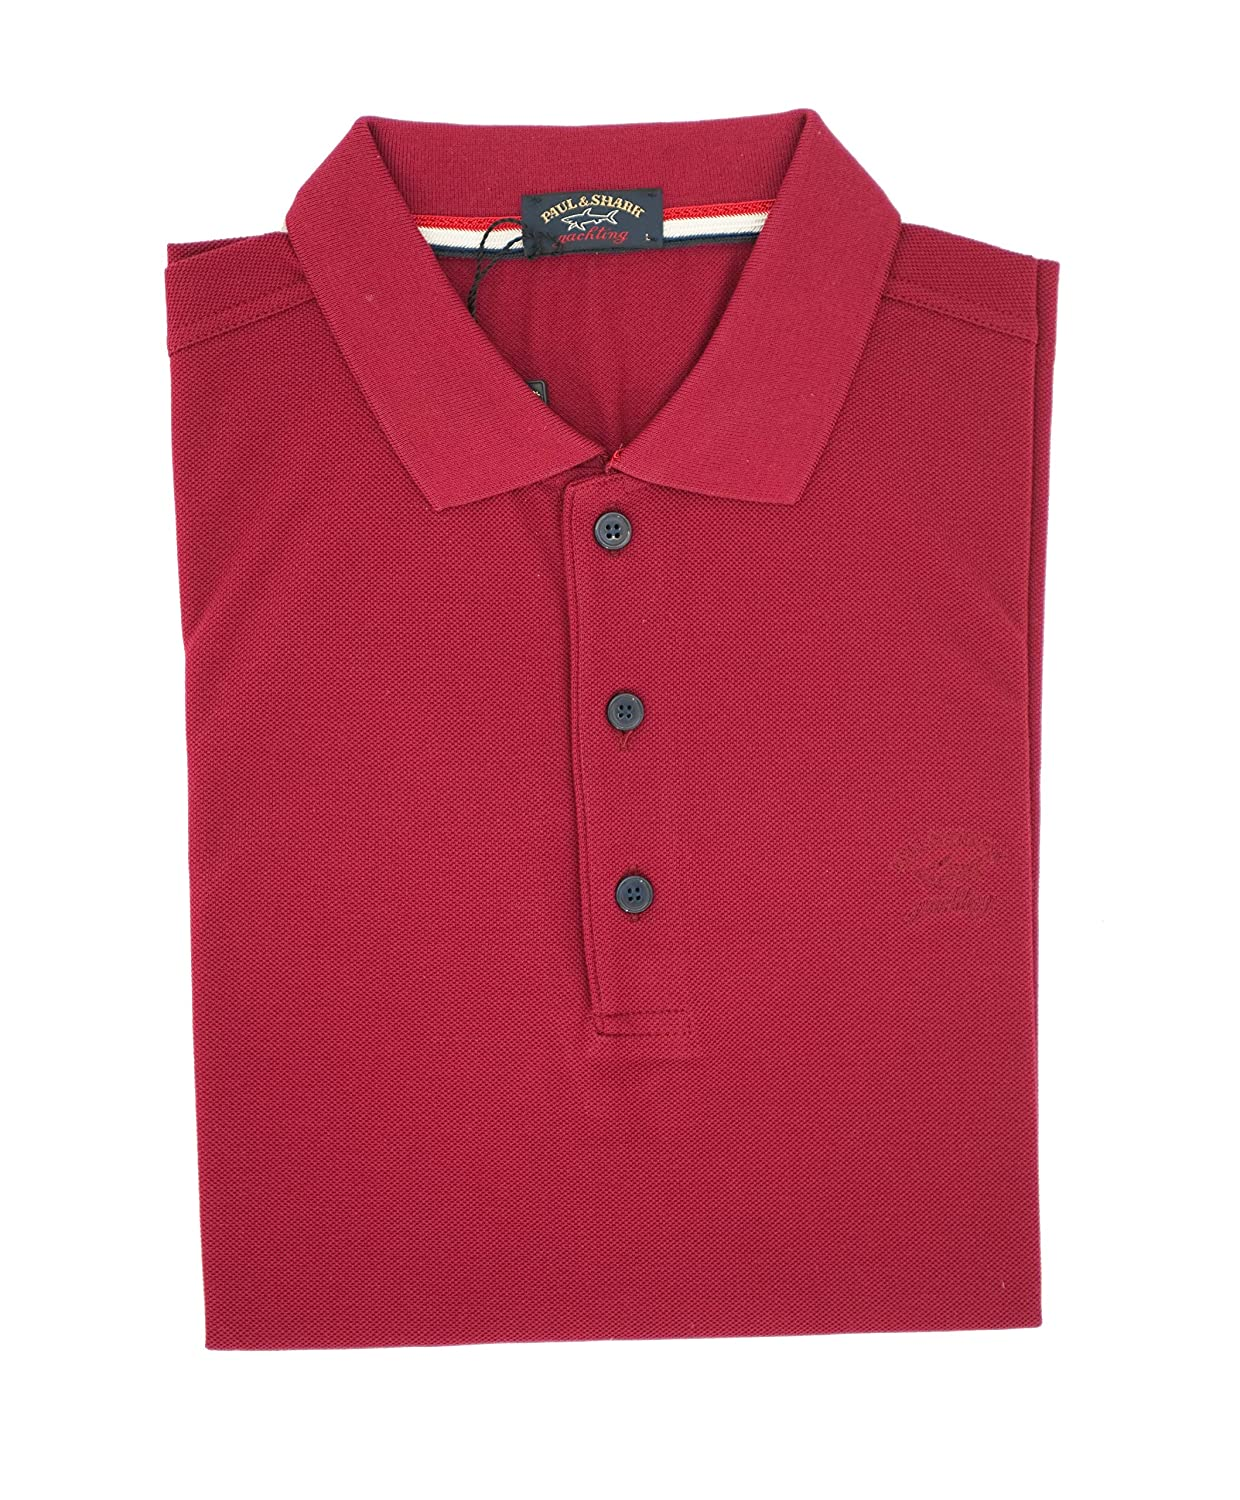 PAUL & SHARK Polo, Informal, Regular, algodón Rojo XL: Amazon.es ...